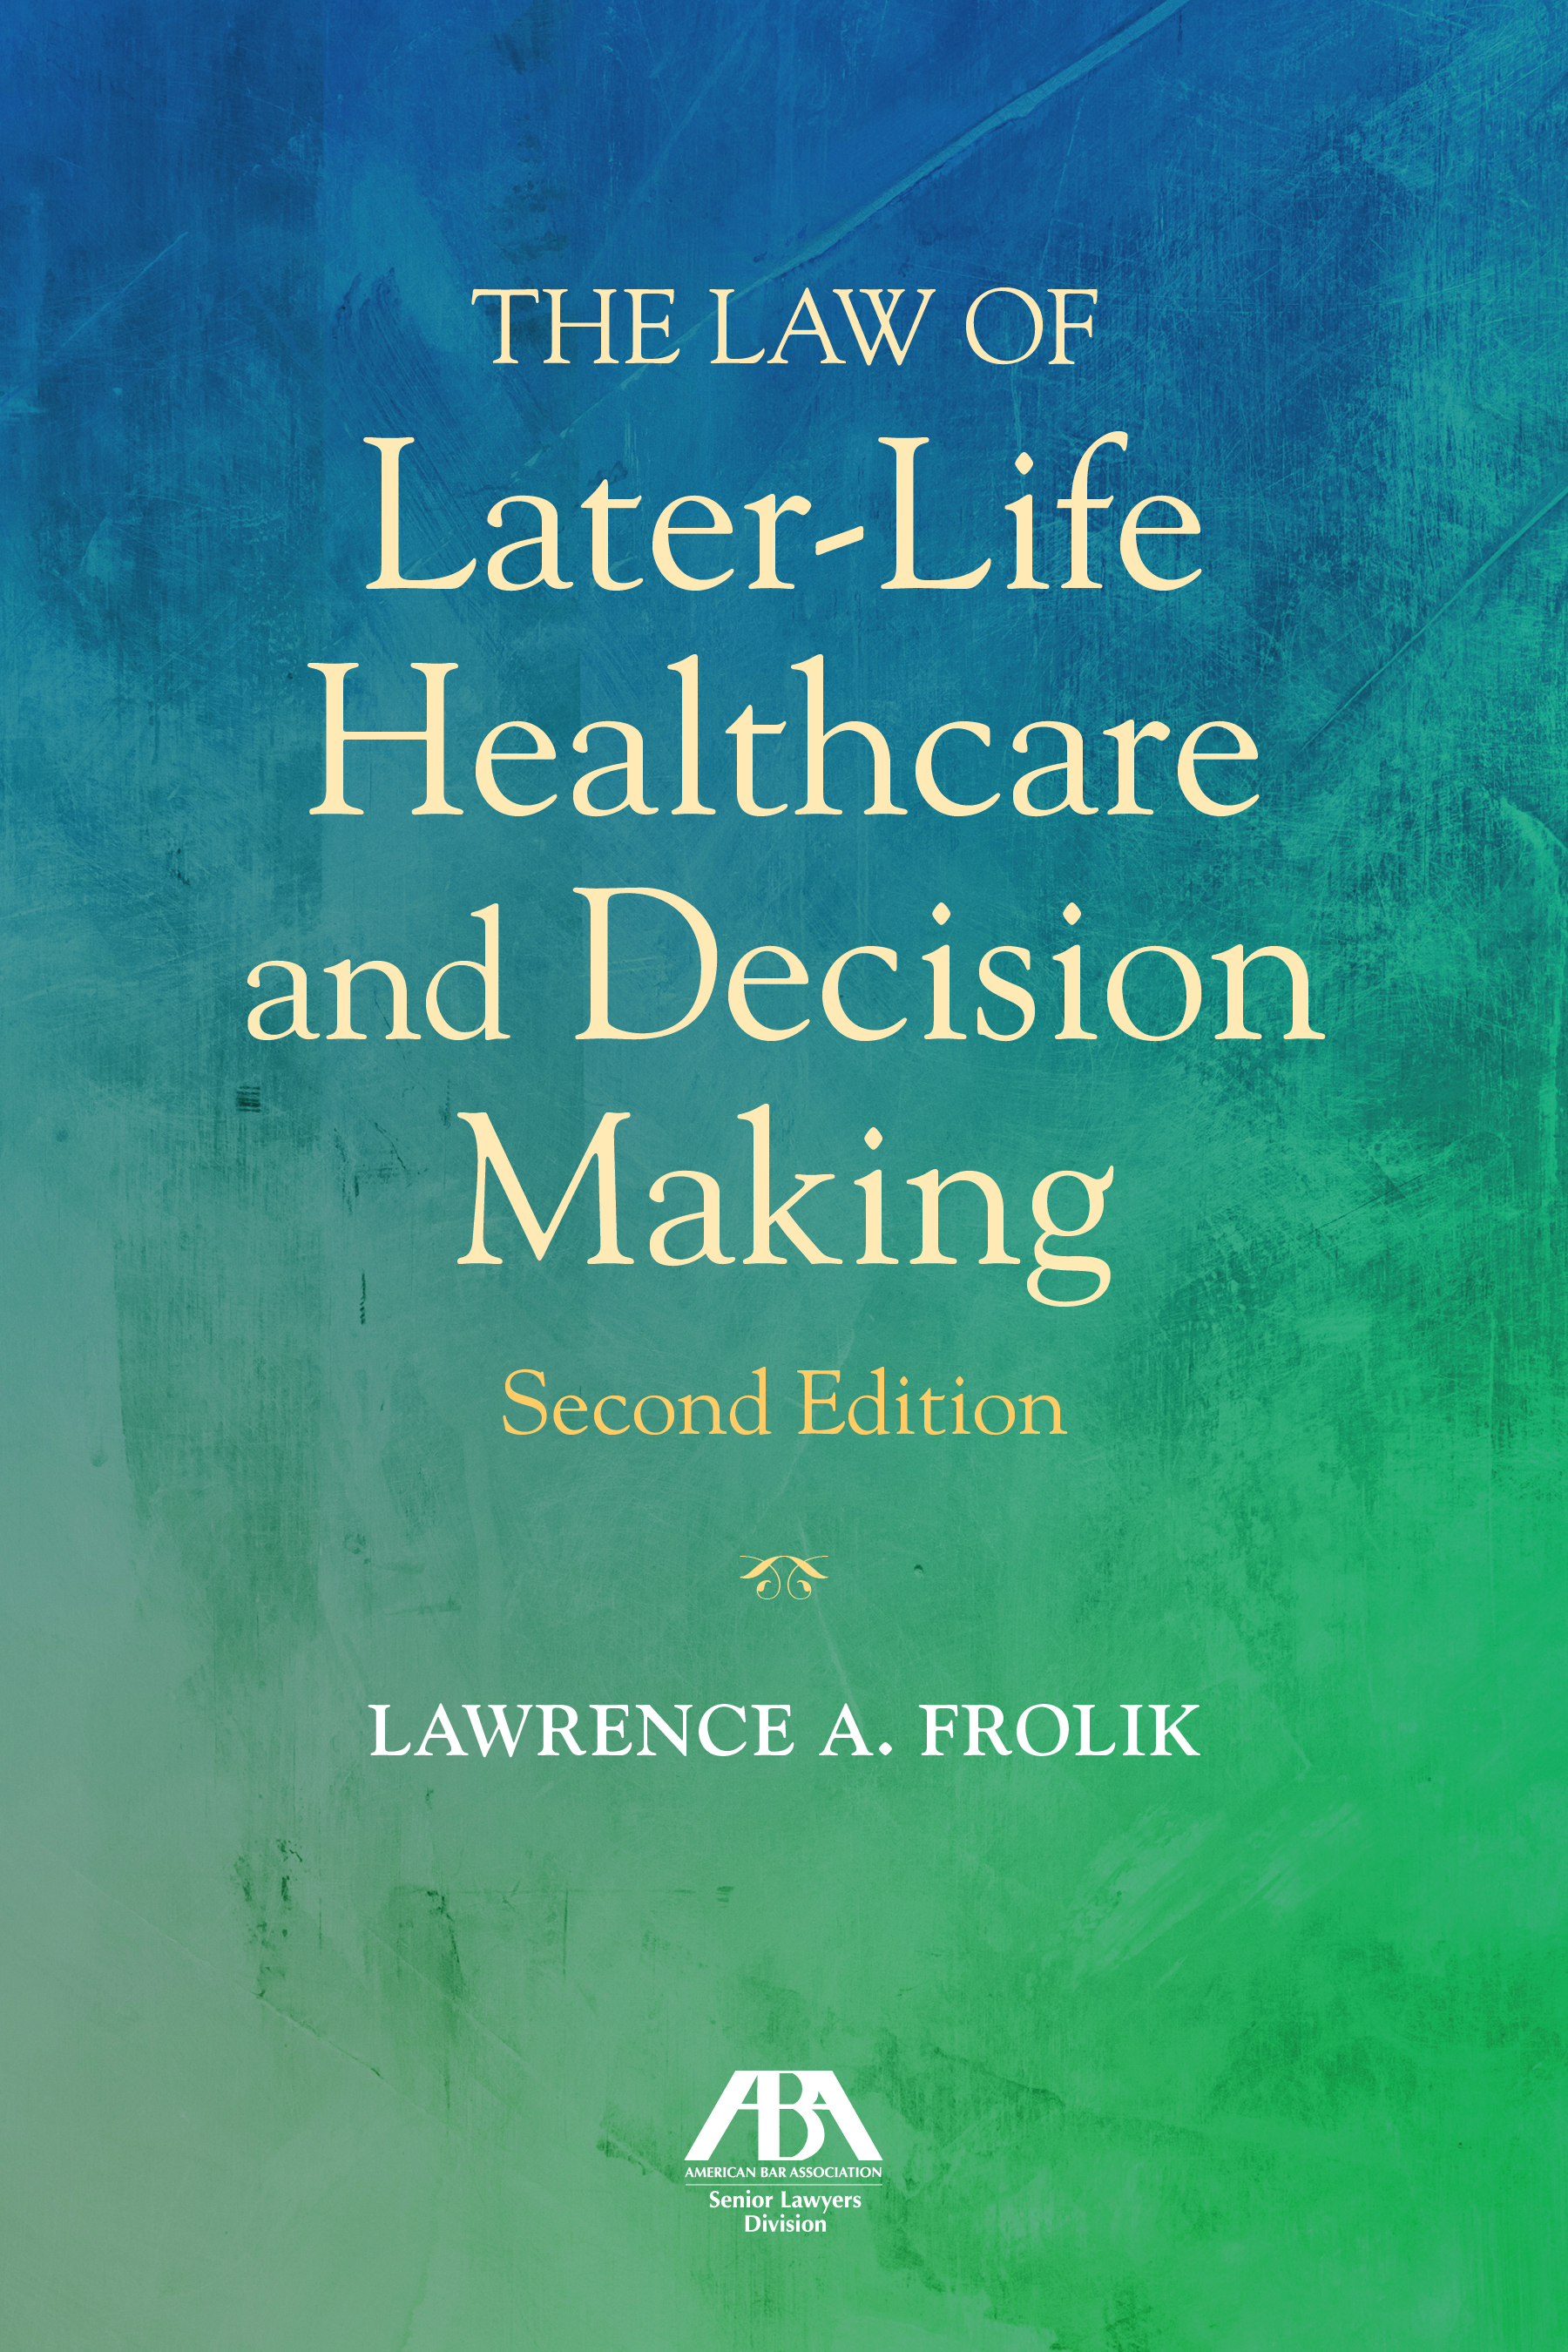 The Law of Later-Life Healthcare and Decision Making, Second Edition